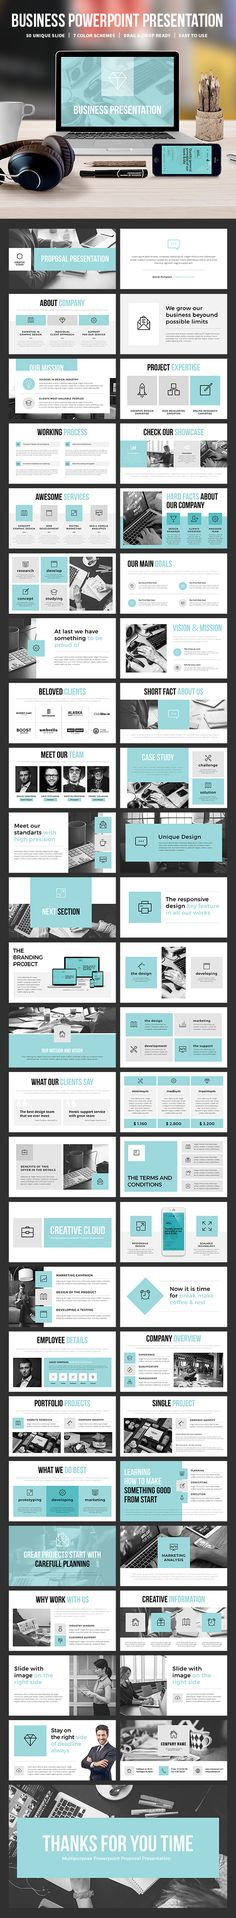 Professional minimalistic PowerPoint presentation template ideal for creative or business presentations. Consists of 50 unique PowerPoint slides in 7 color schemes. Web Design, Slide Design, Layout Design, Design Presentation, Business Presentation, Presentation Folder, Business Powerpoint Templates, Powerpoint Presentation Templates, Free Powerpoint Templates Download